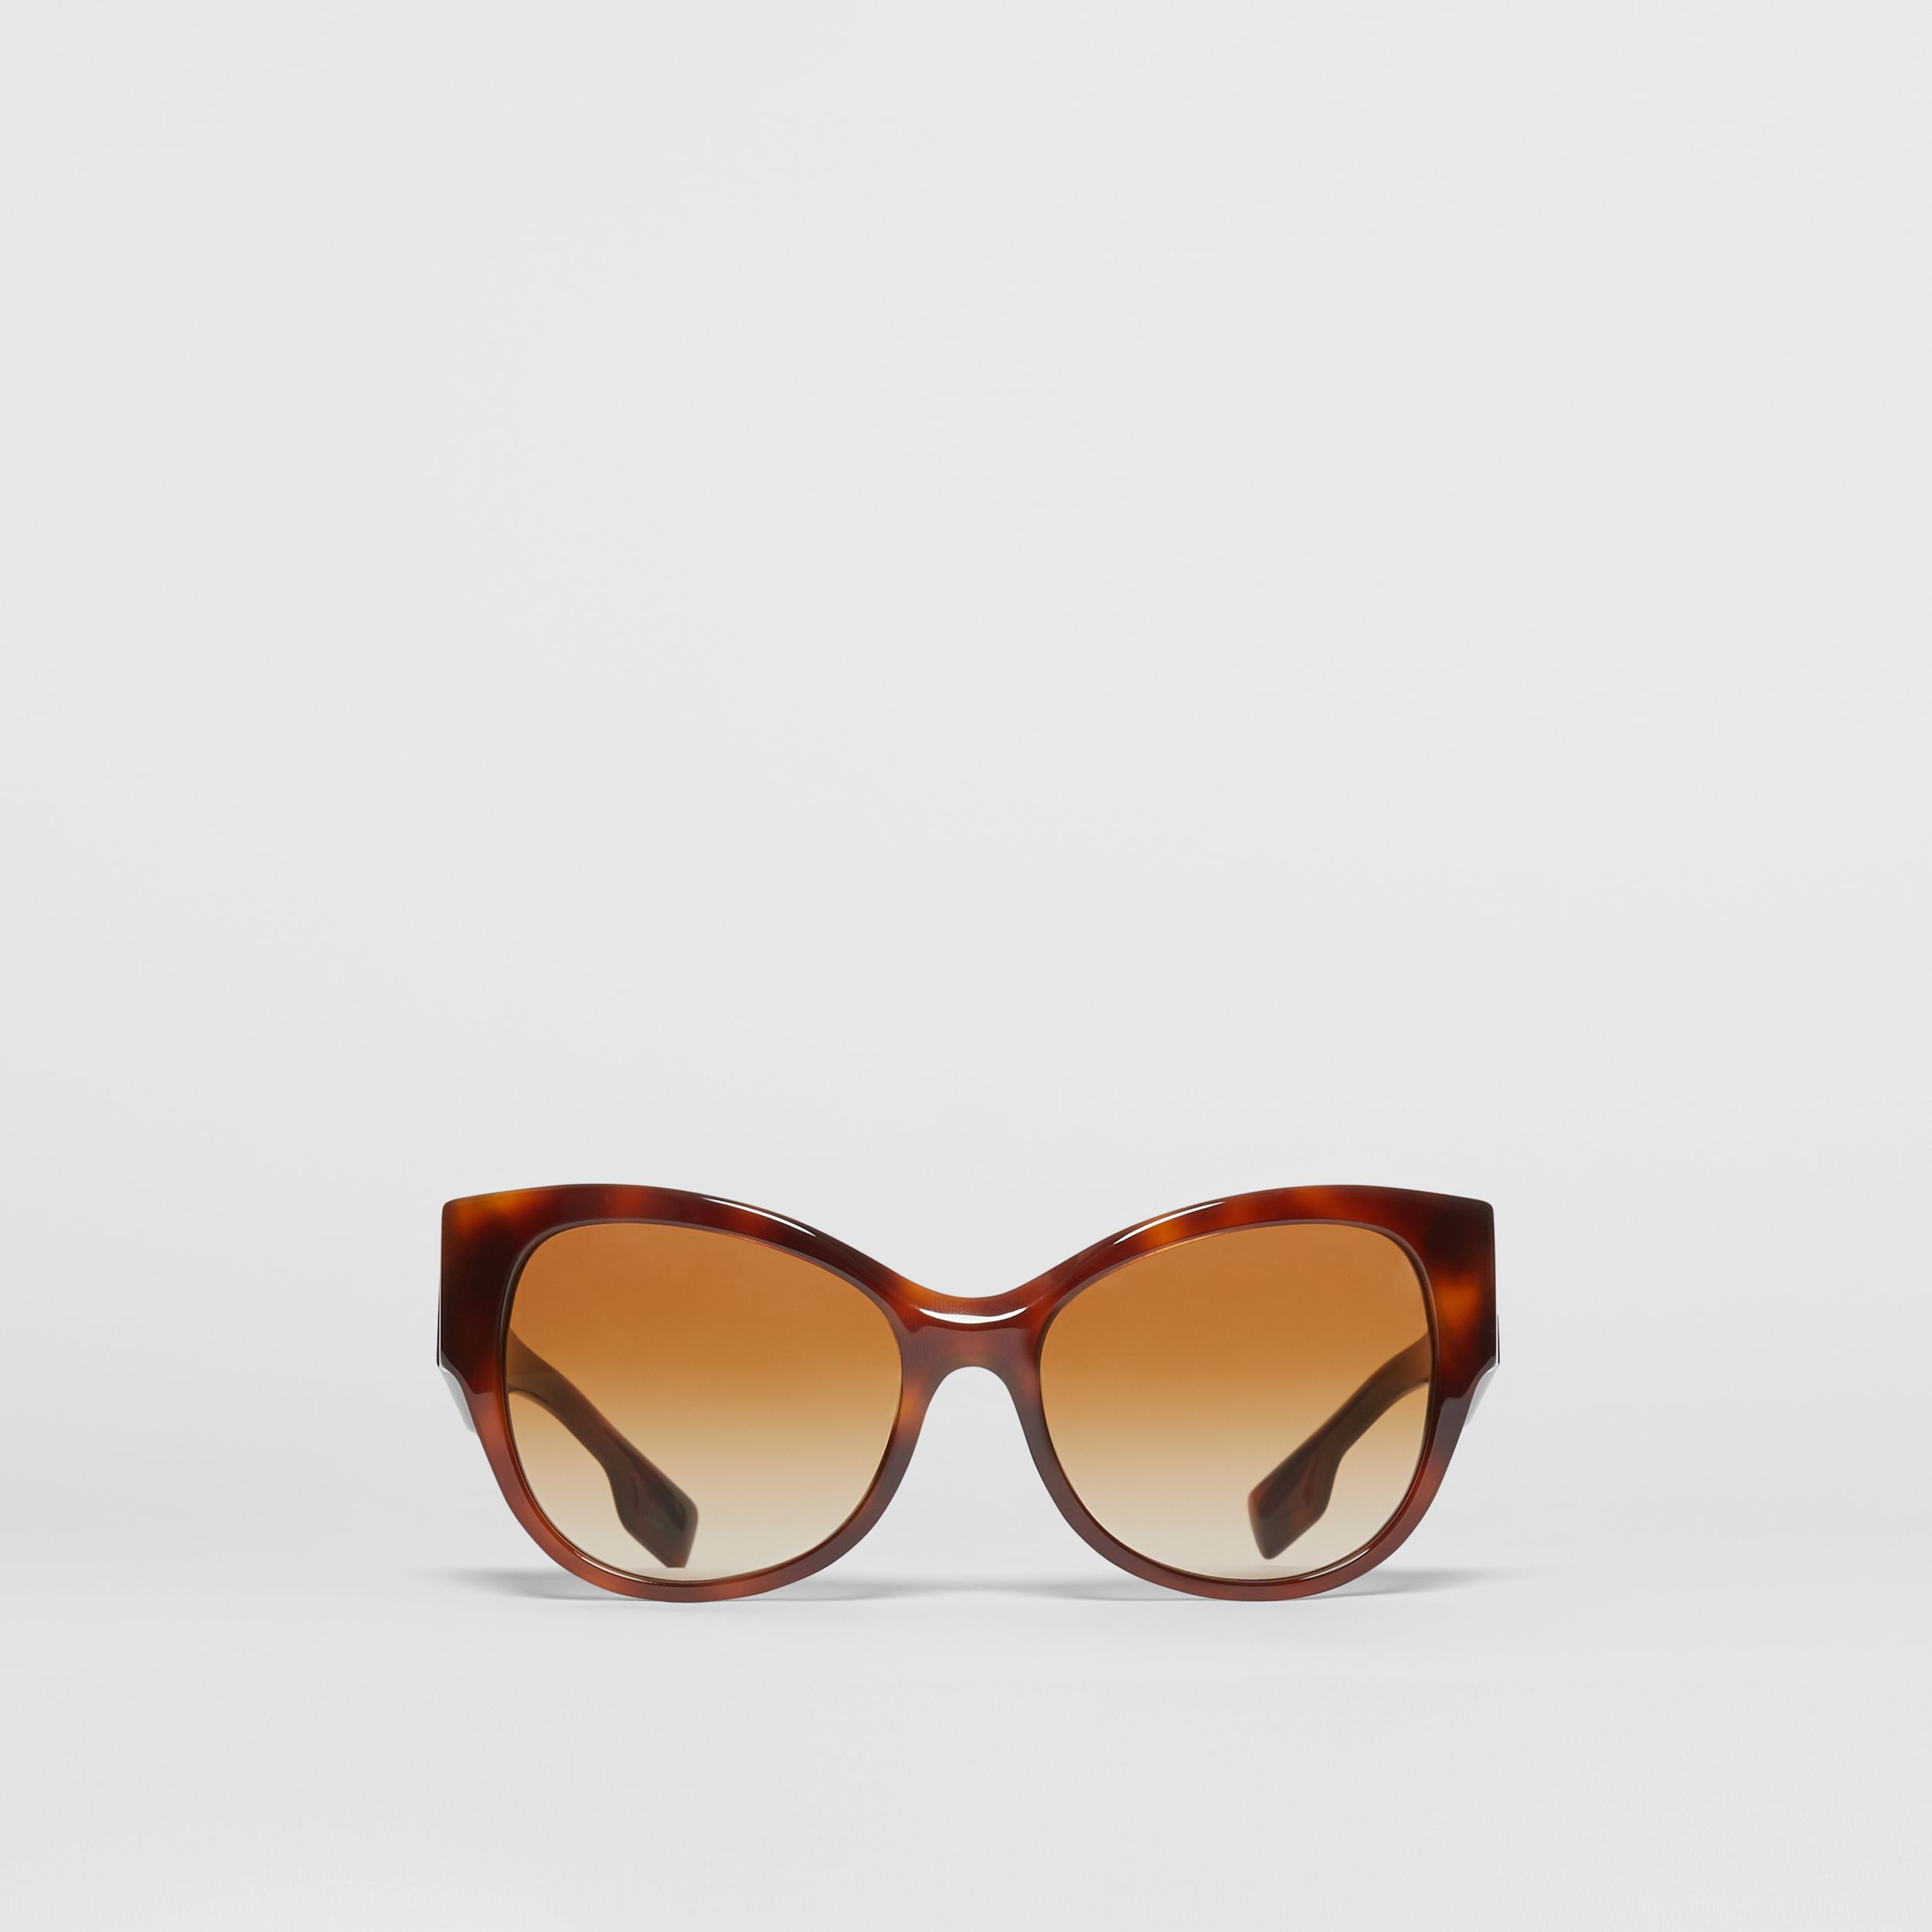 Butterfly Frame Sunglasses in Amber Tortoiseshell - Women | Burberry - 1